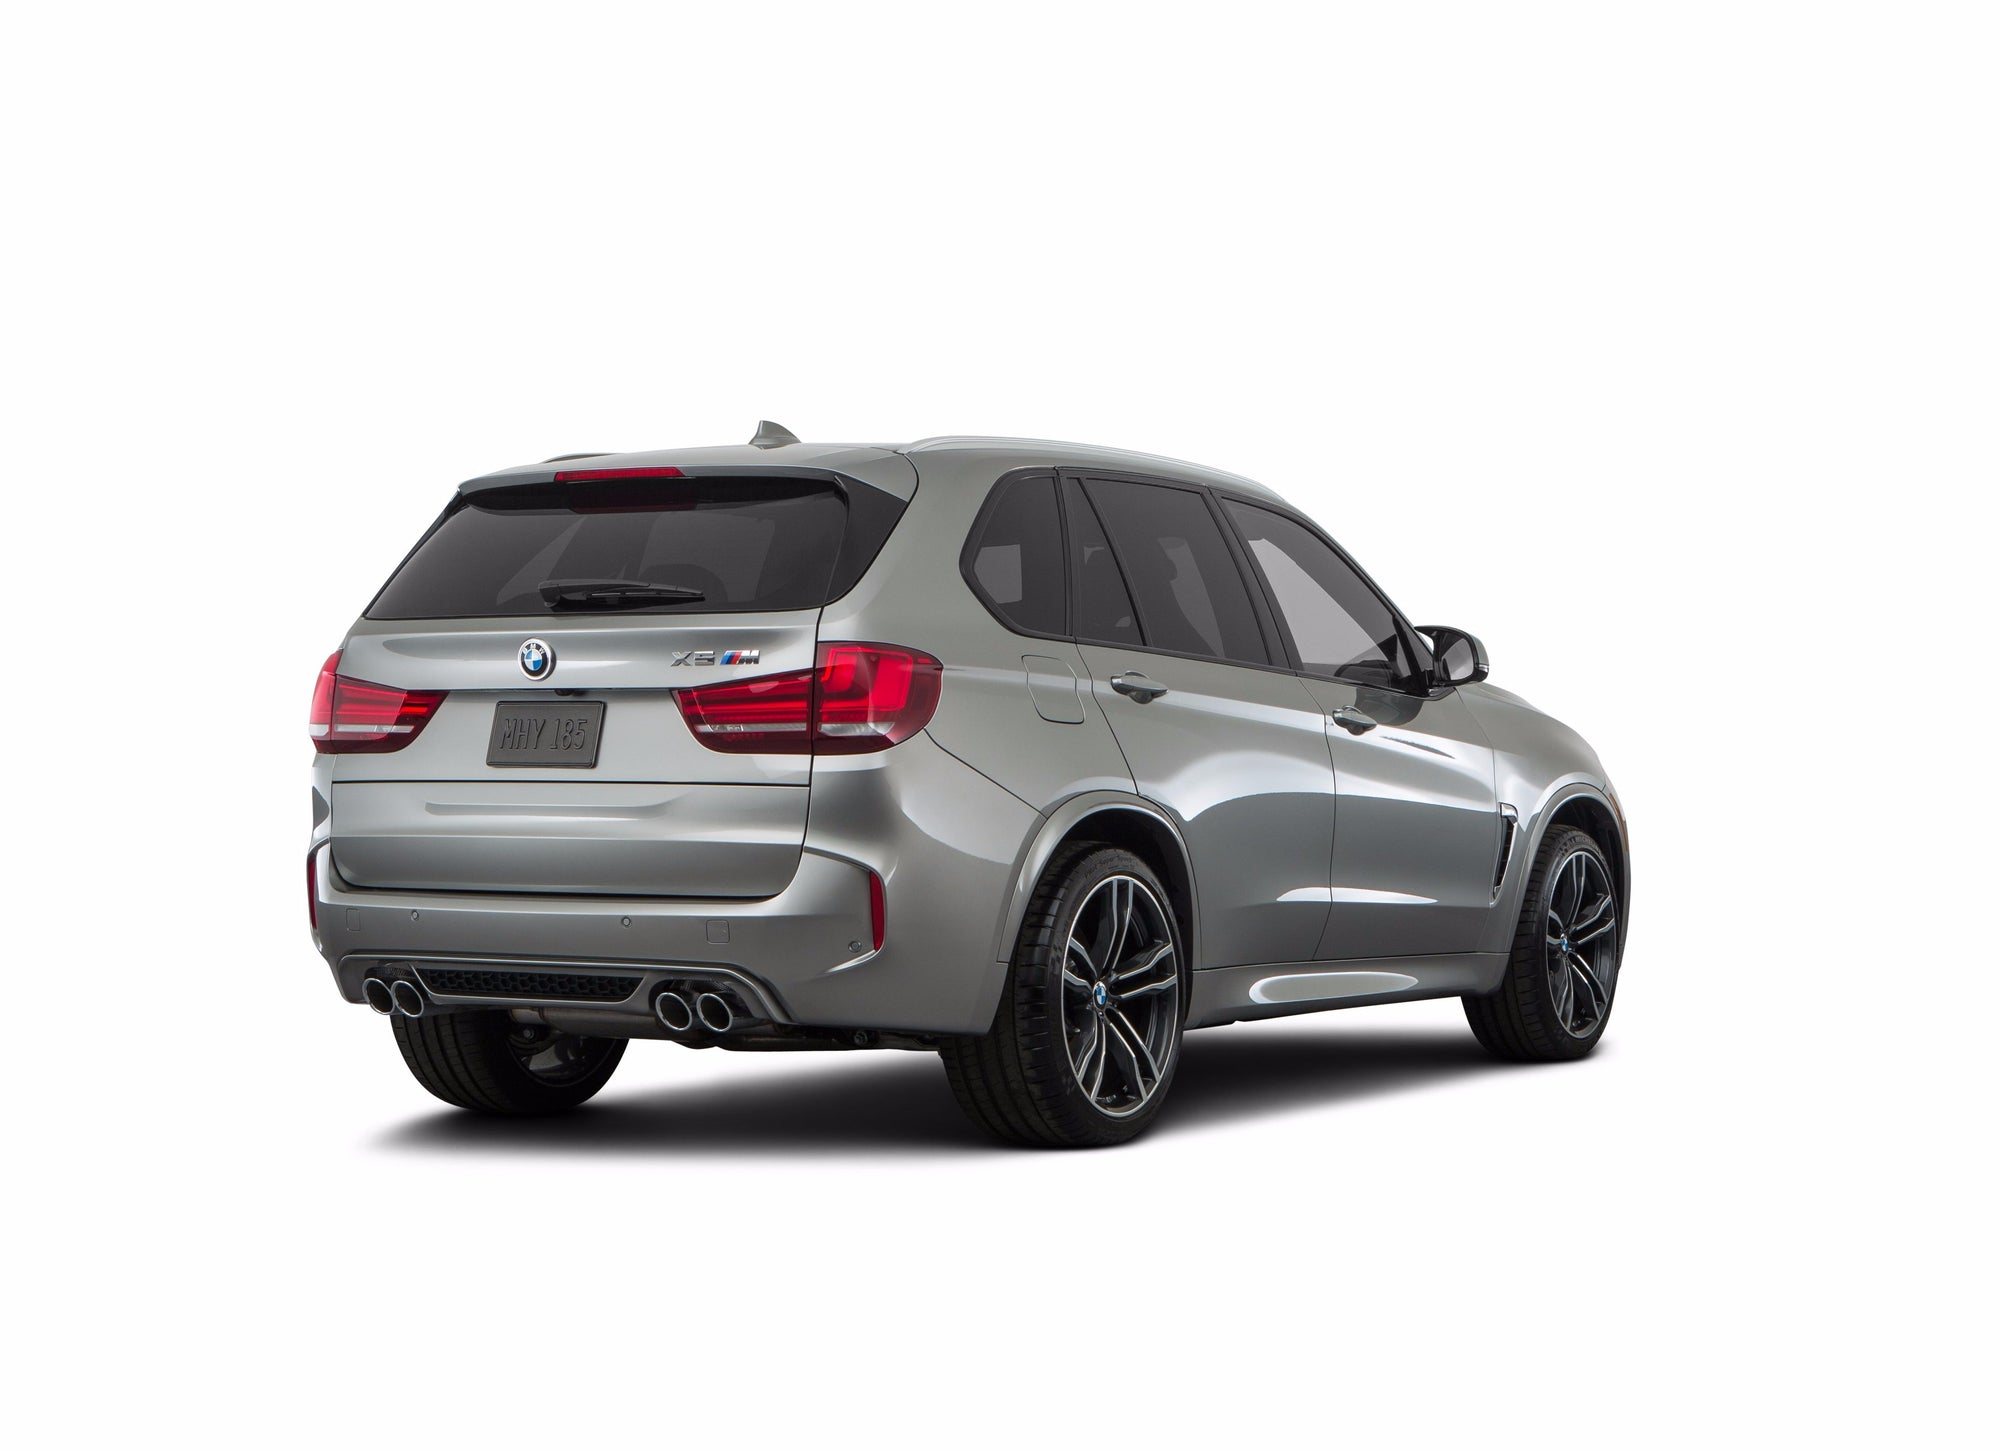 BMW X5 (E70) 2007 - 2013 - Stealth Hitches - The Hitch Made to